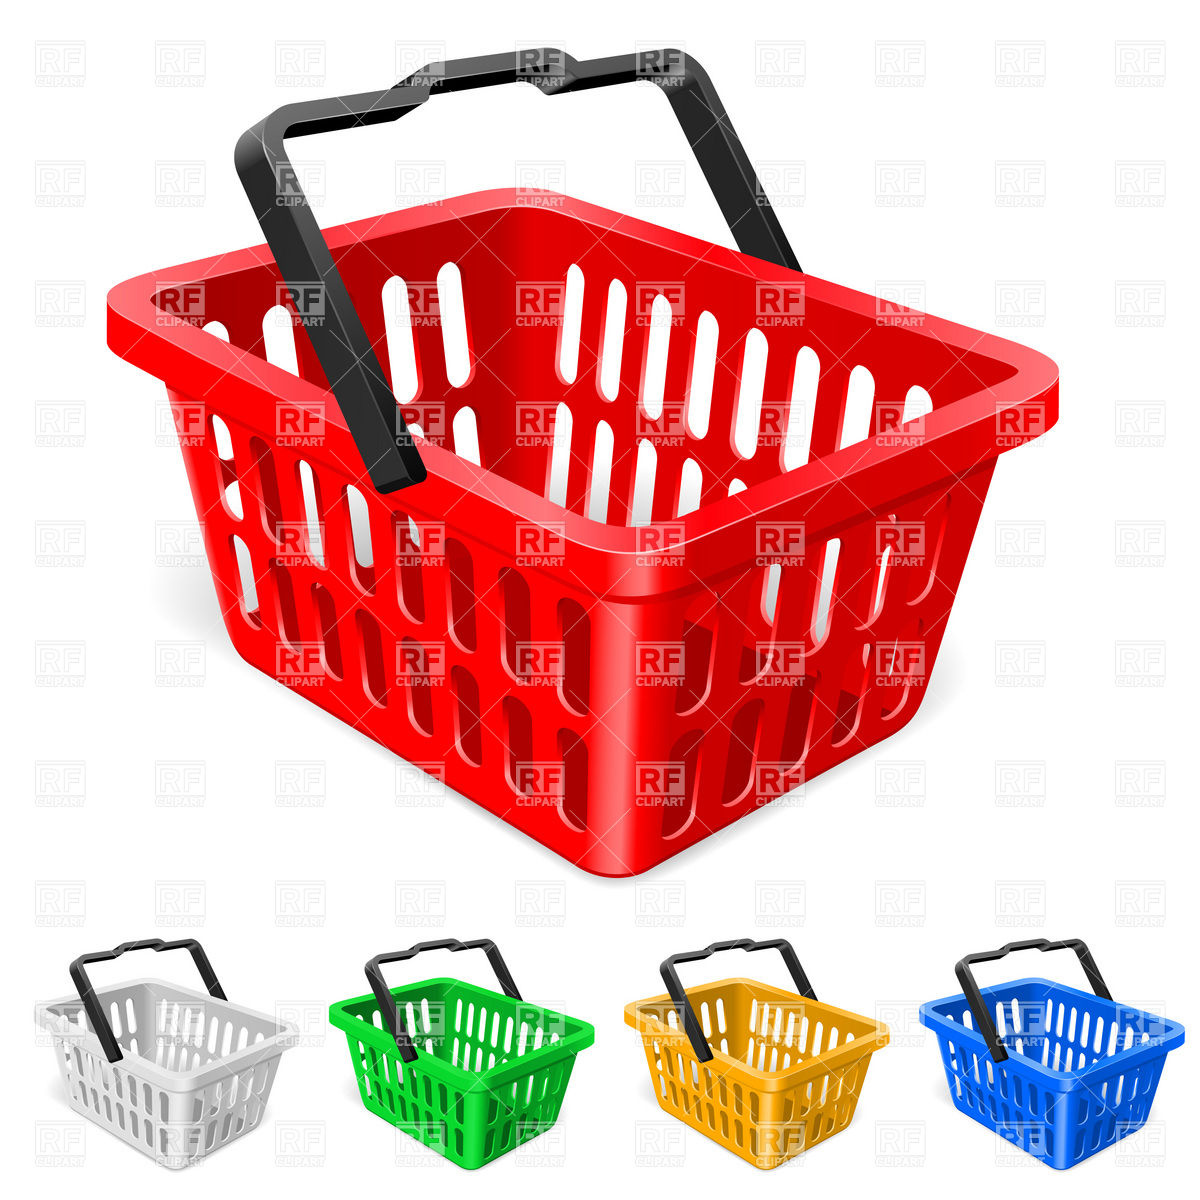 Basket 7640 Objects Download Royalty Free Vector Clipart  Eps